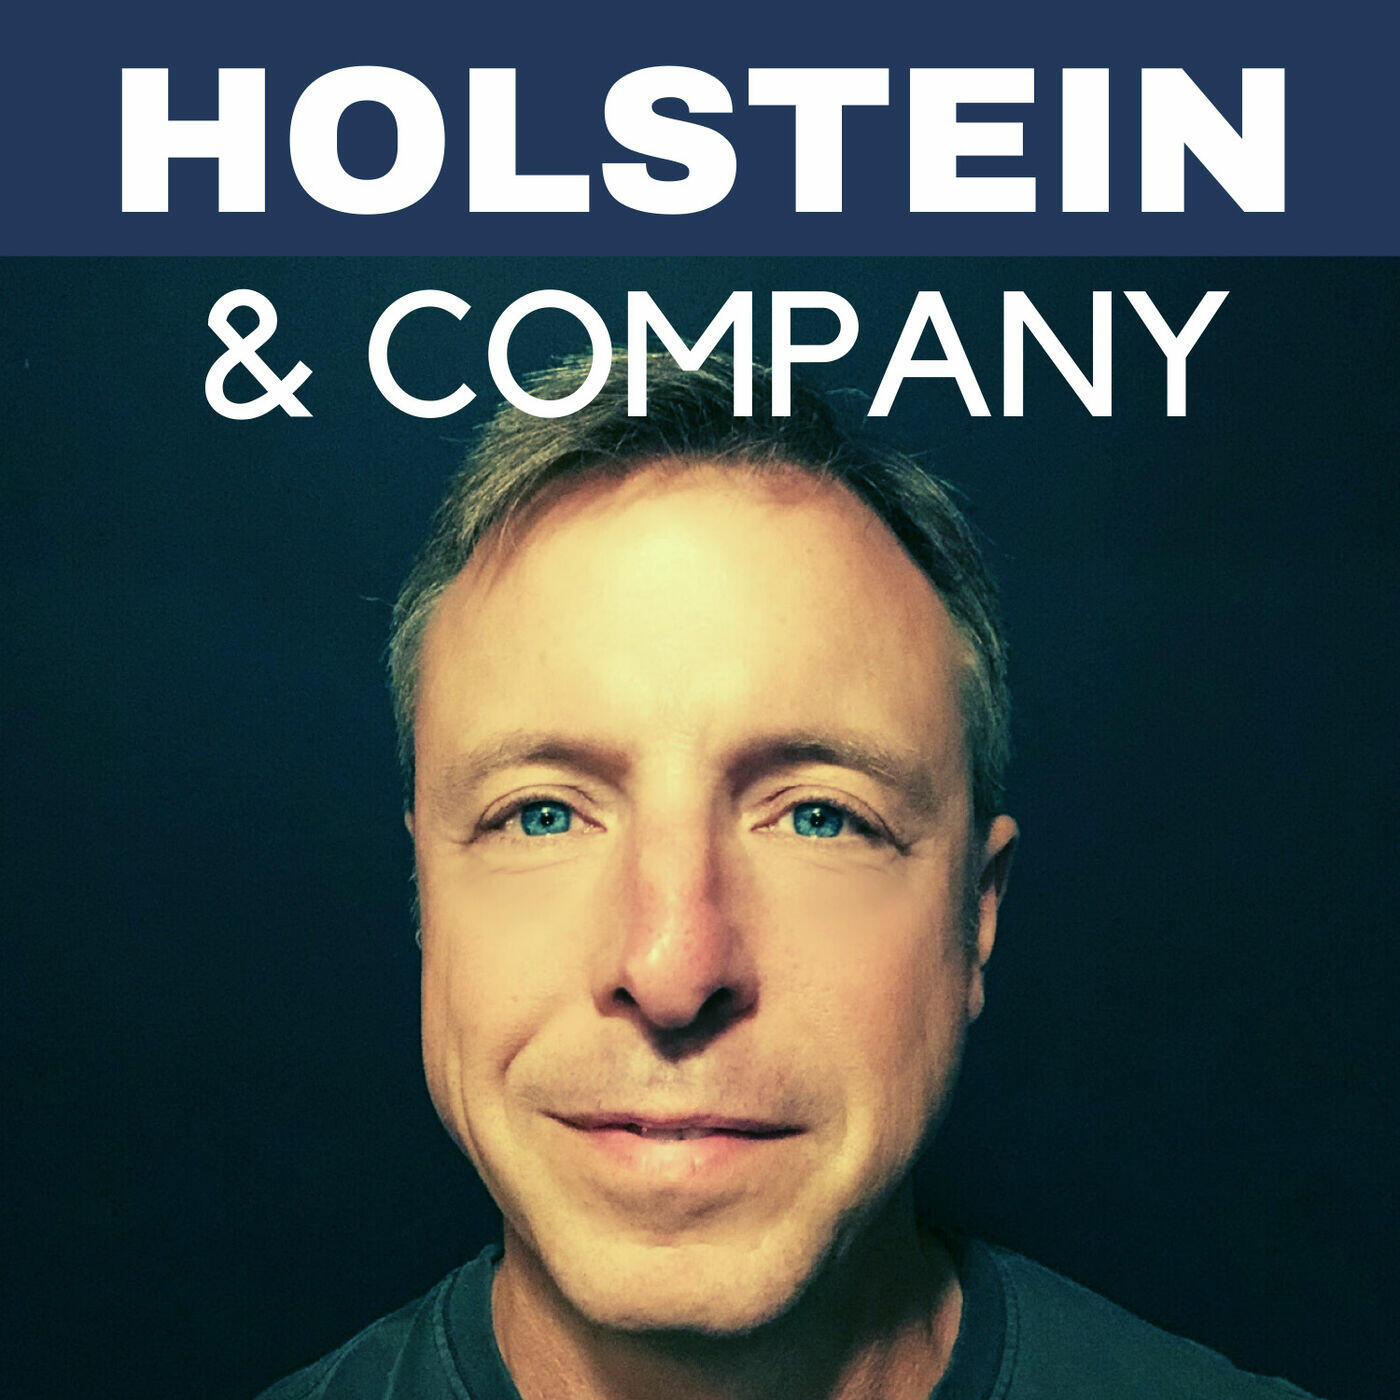 Holstein and Company